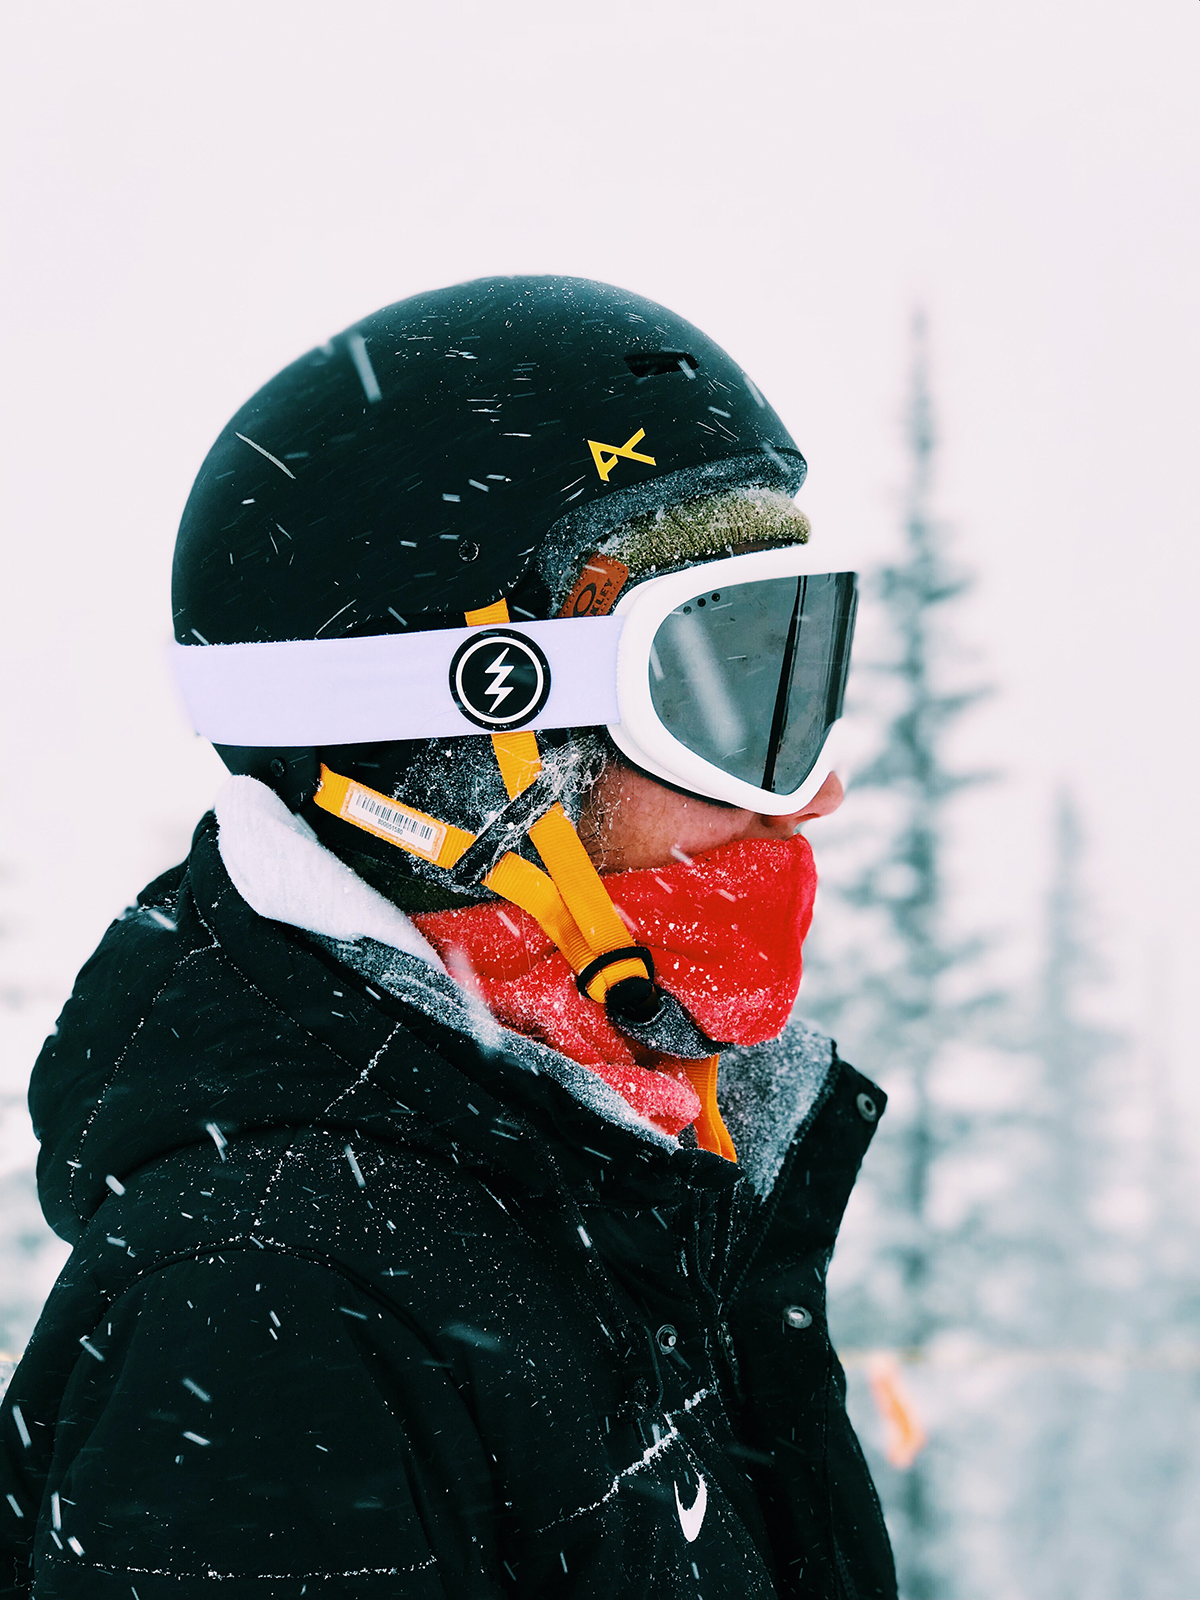 Profile view of a skier in a helmet and mask on snowy day in Park City